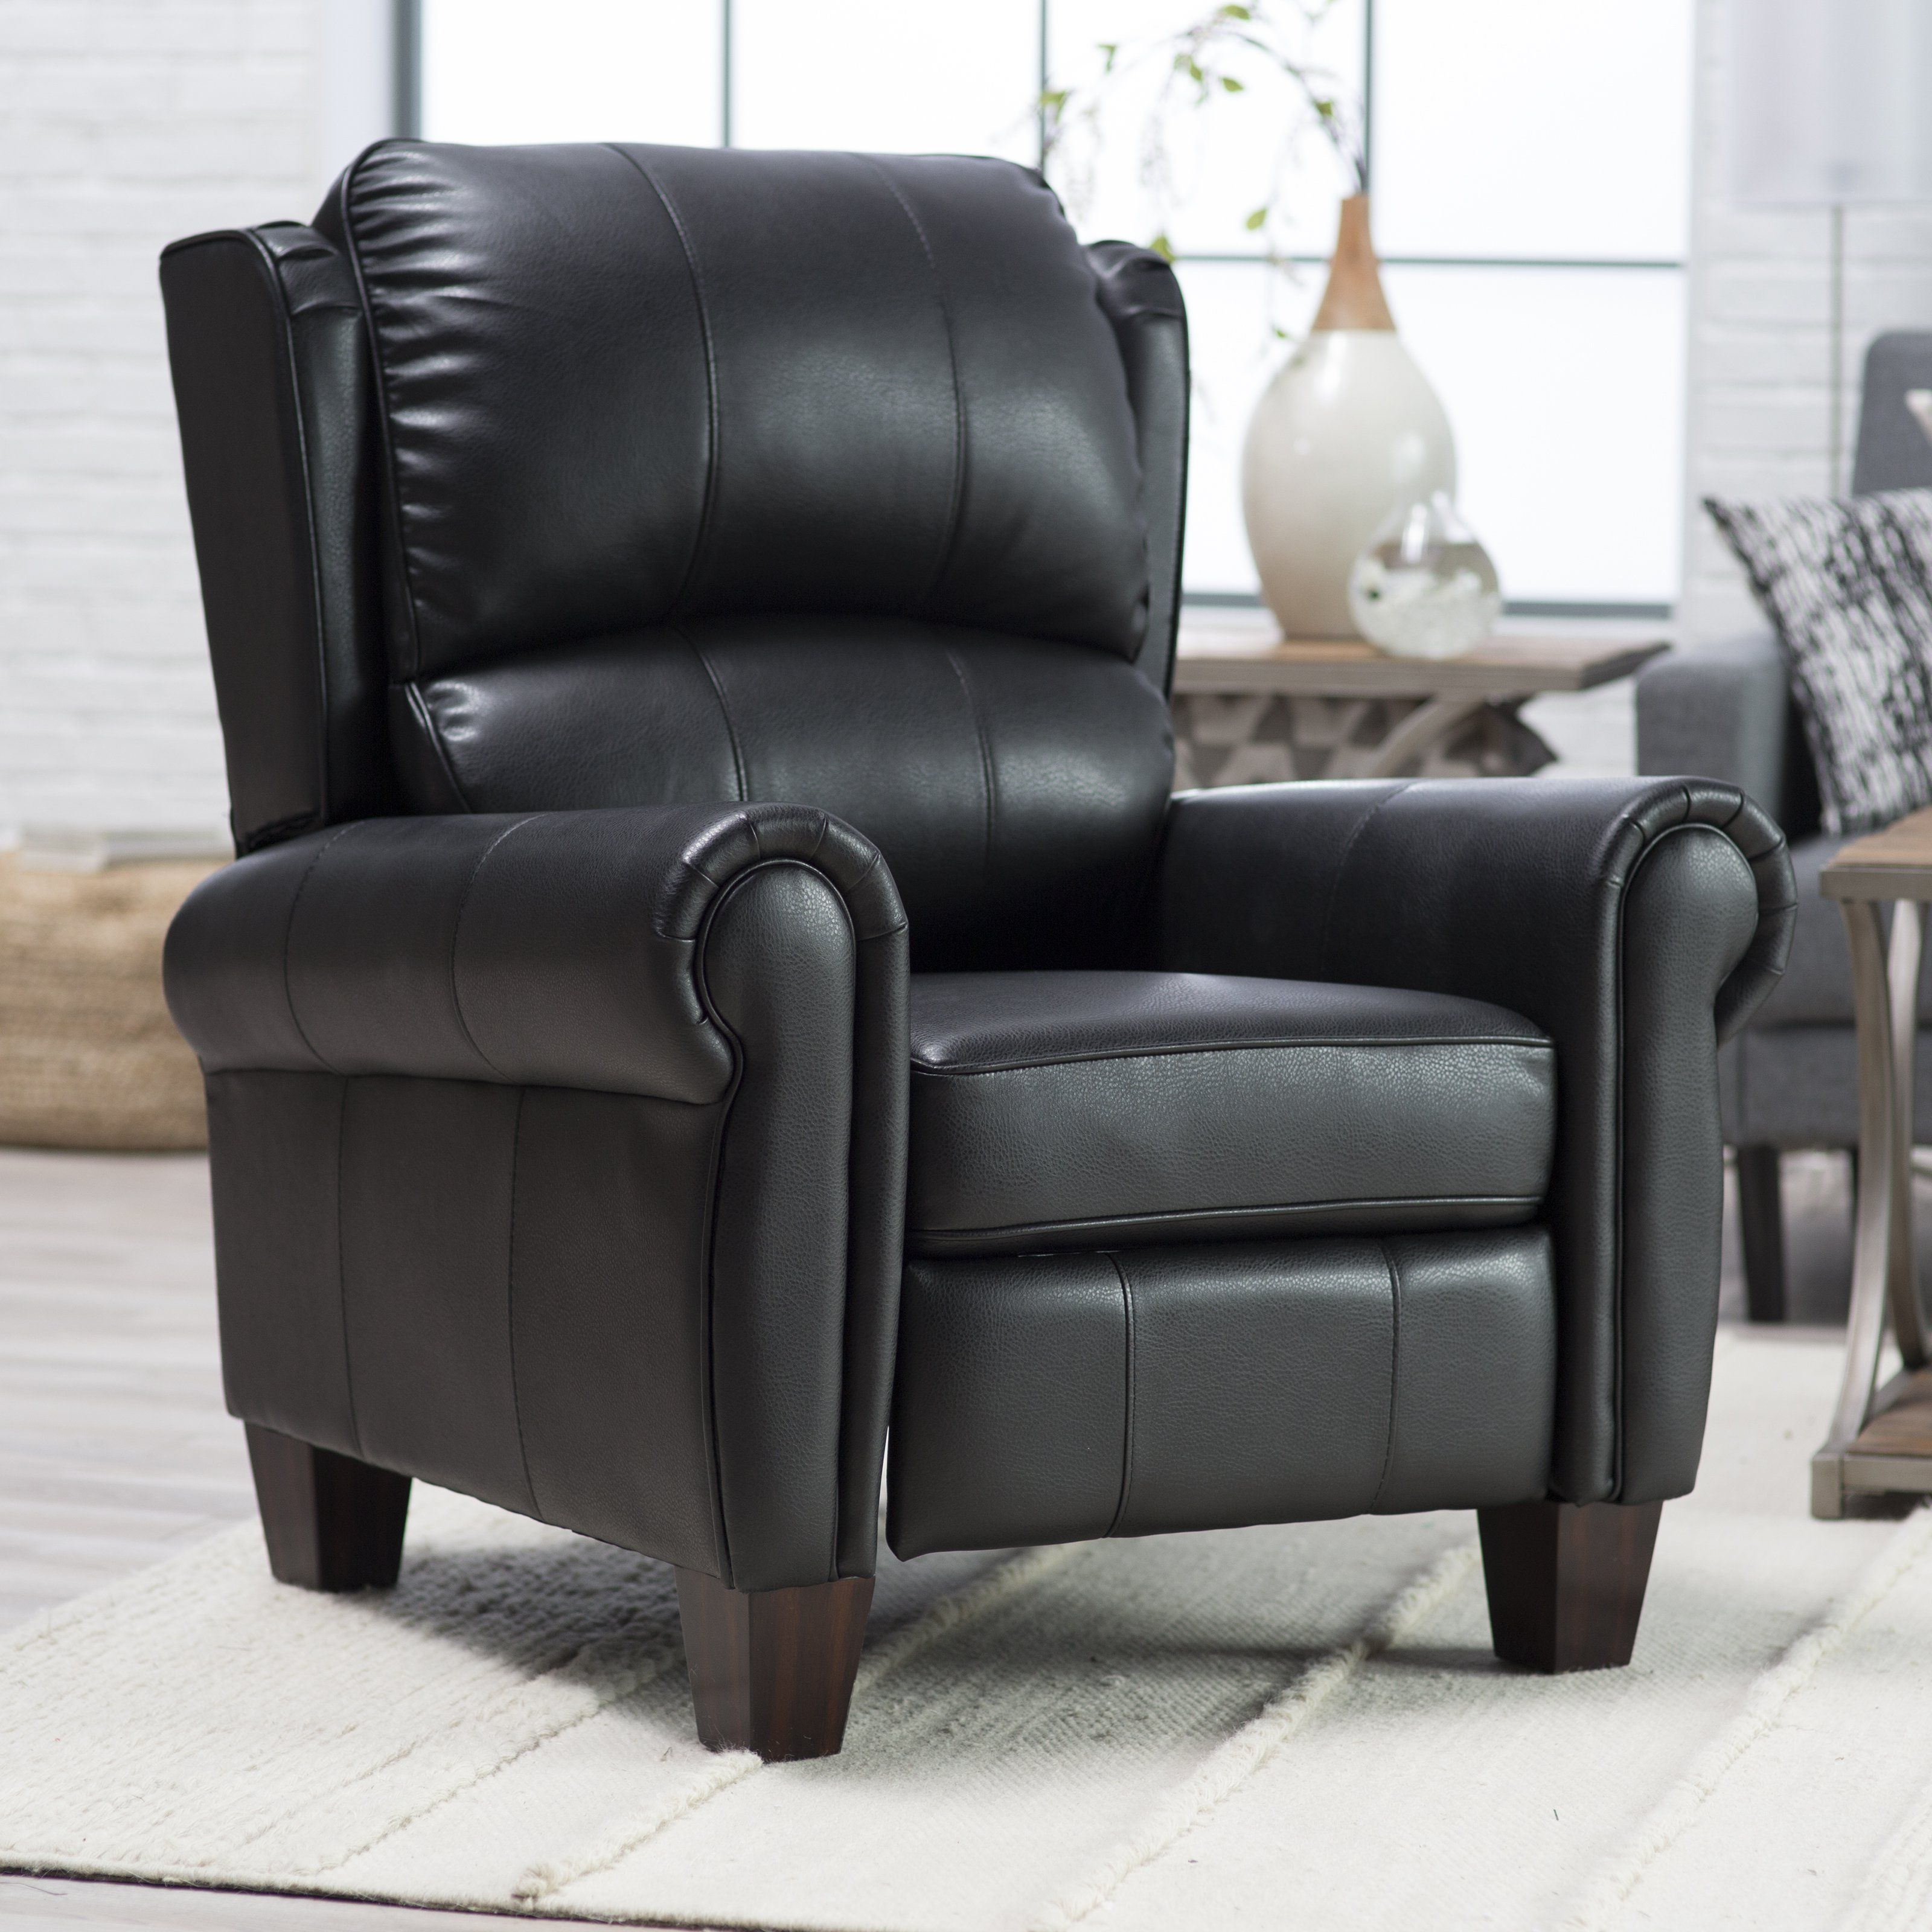 Recliner Barcalounger Charleston Leather Push Back Recliner